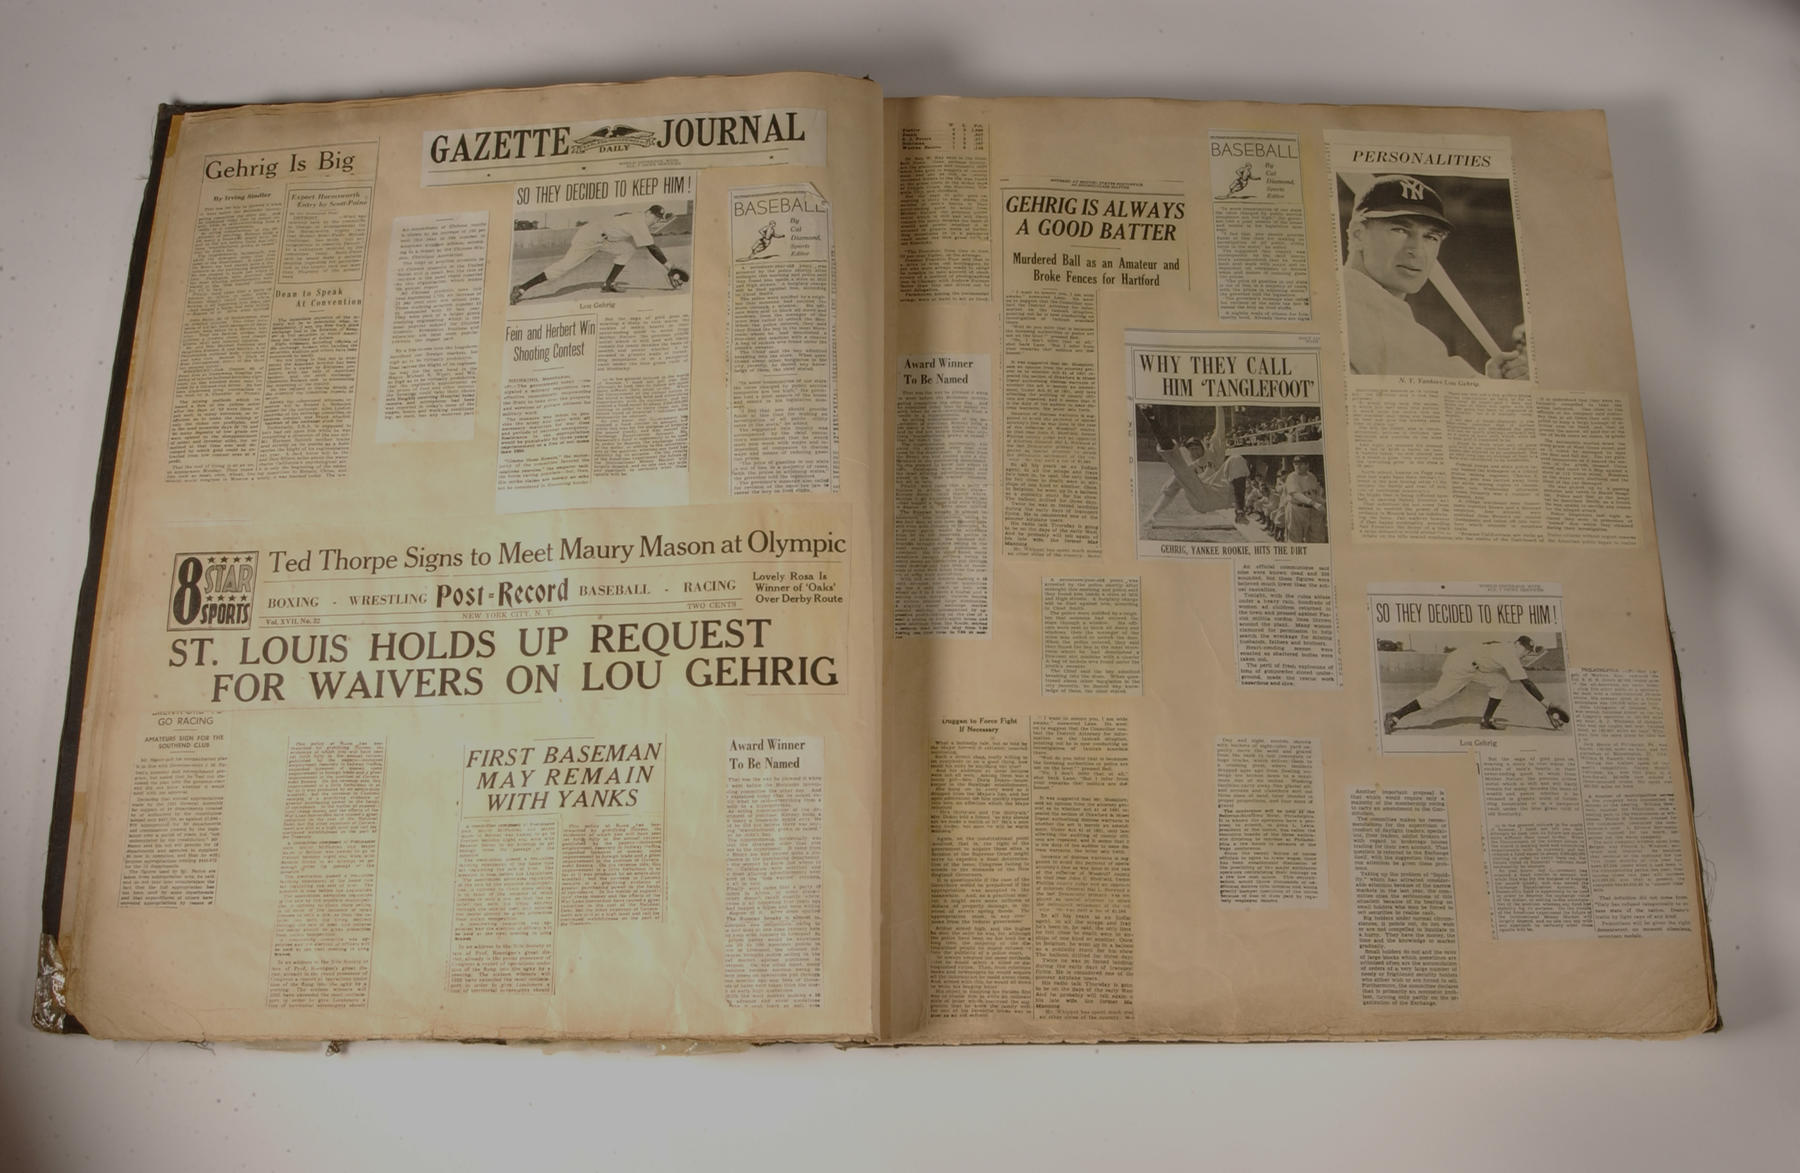 """The Hall of Fame Library contains not only Eleanor Gehrig's original scrapbook documenting her husband's career but also this movie prop scrapbook -- based on the original -- used in """"Pride of the Yankees."""" (Milo Stewart Jr., National Baseball Hall of Fame Library)"""